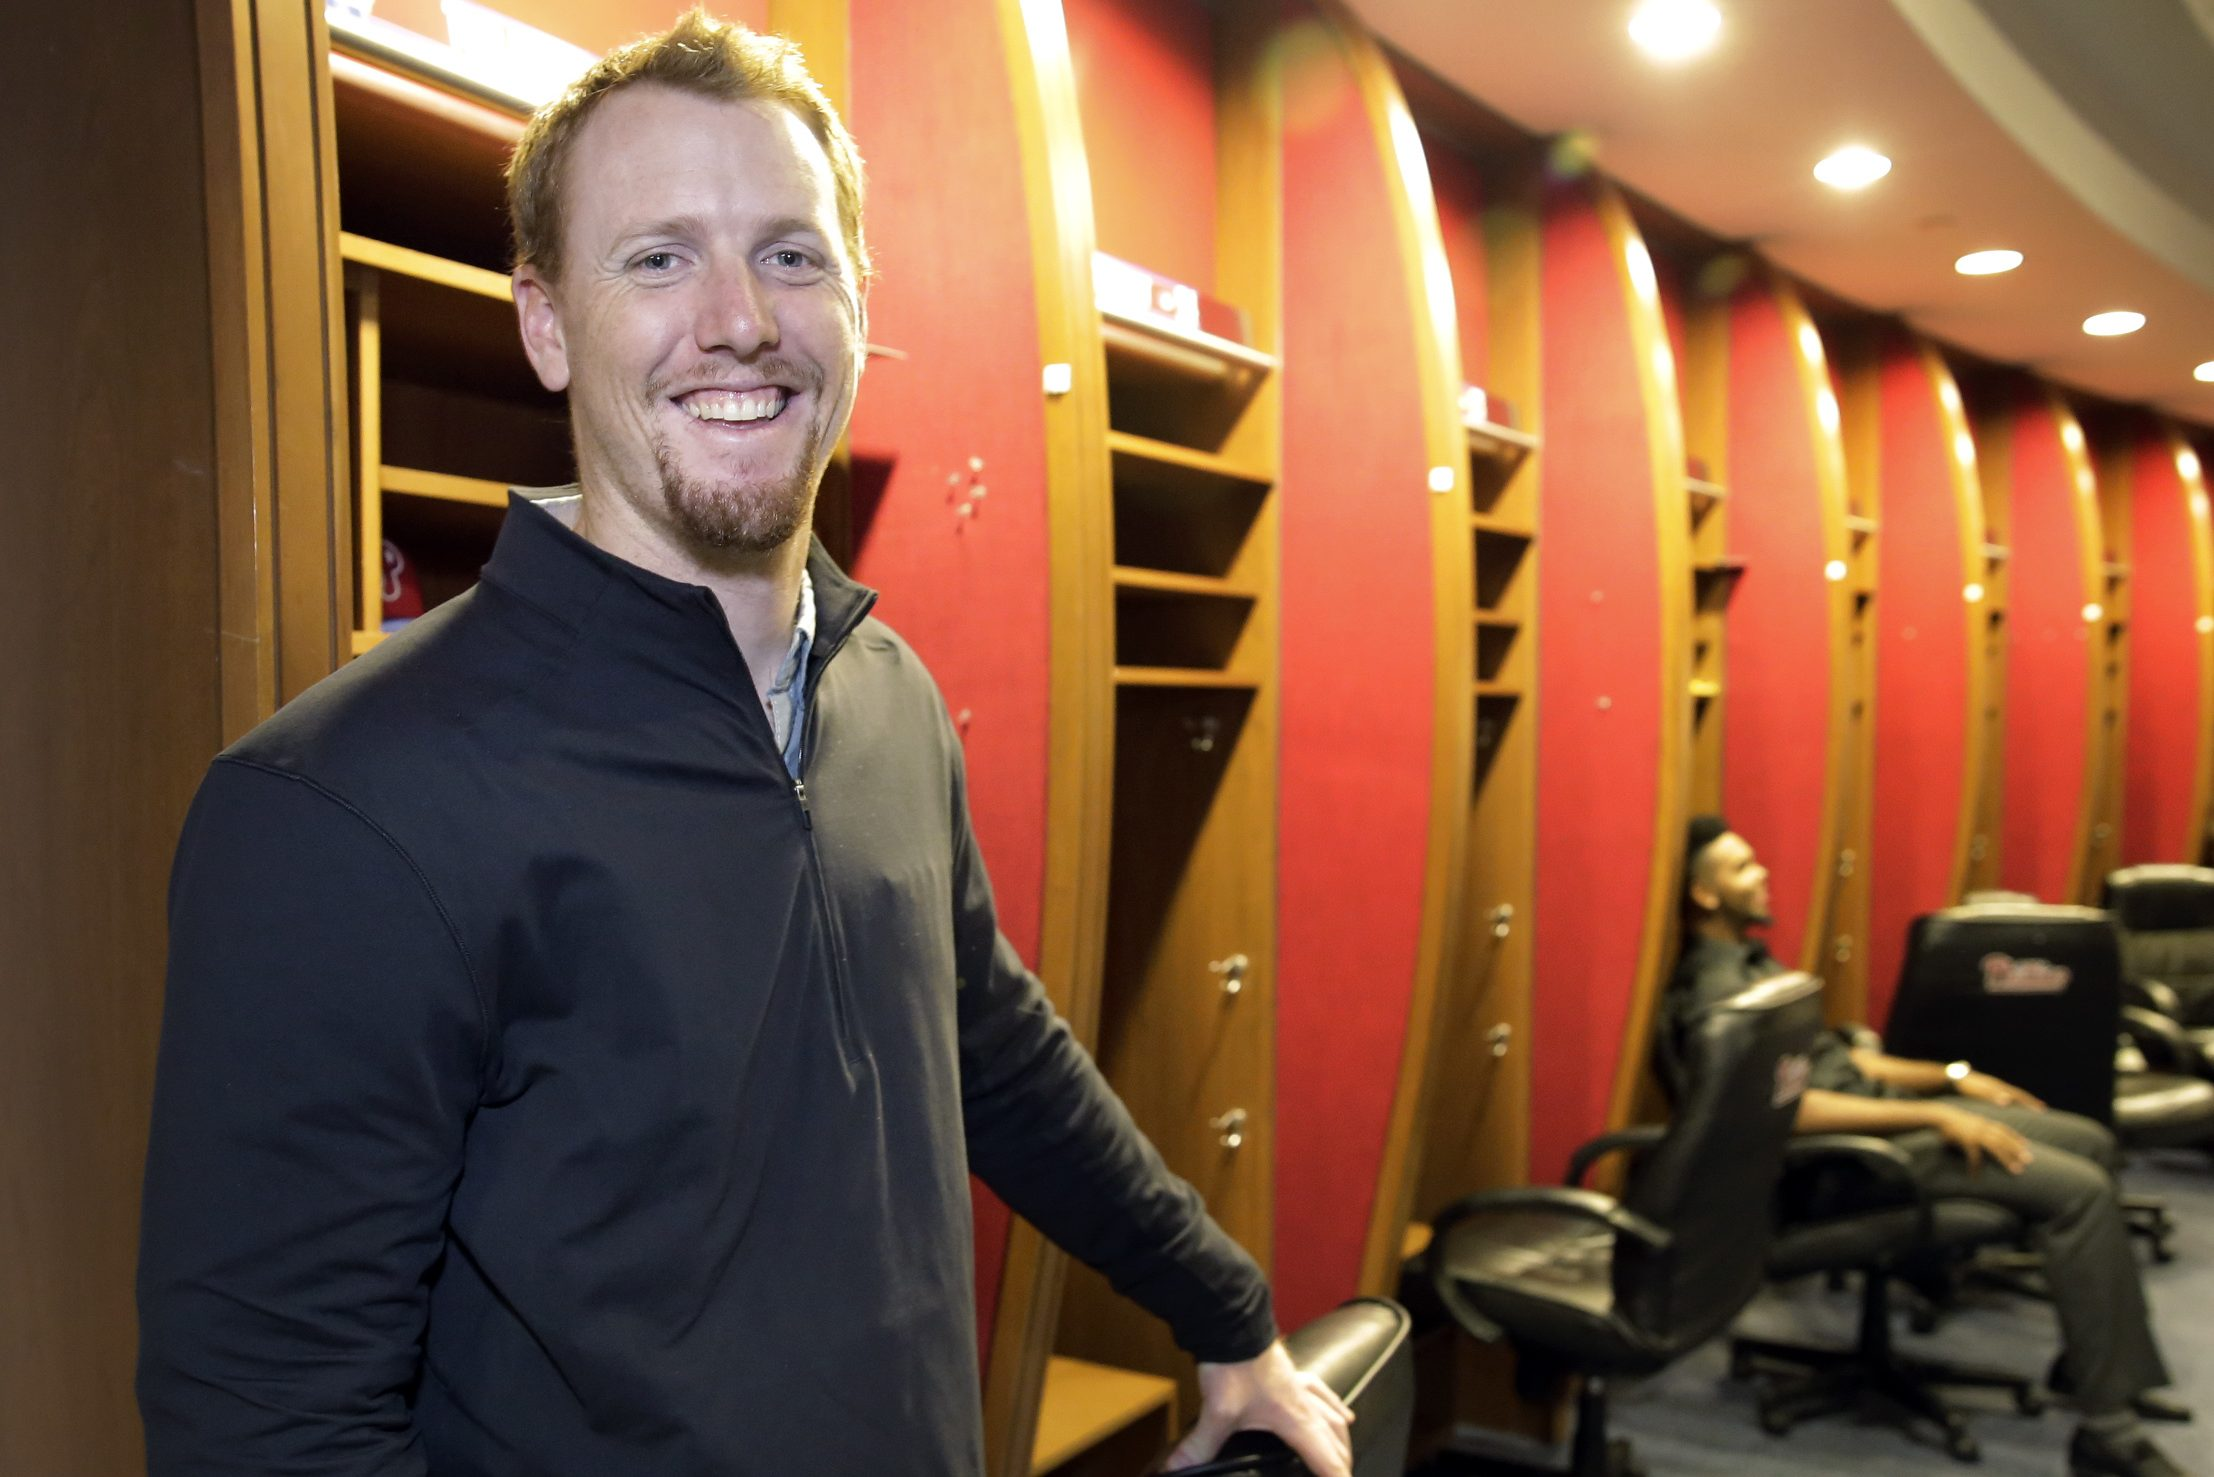 Tom Eshelman in the Phillies Clubhouse at Citizens Bank Park on Wednesday. Nine selected Phillies minor-league players are currently in Philadelphia attending the club's annual Prospect Education Program this week. The four-day program consists of various seminars with front office executives, representatives and guest speakers, including former Phillies players.